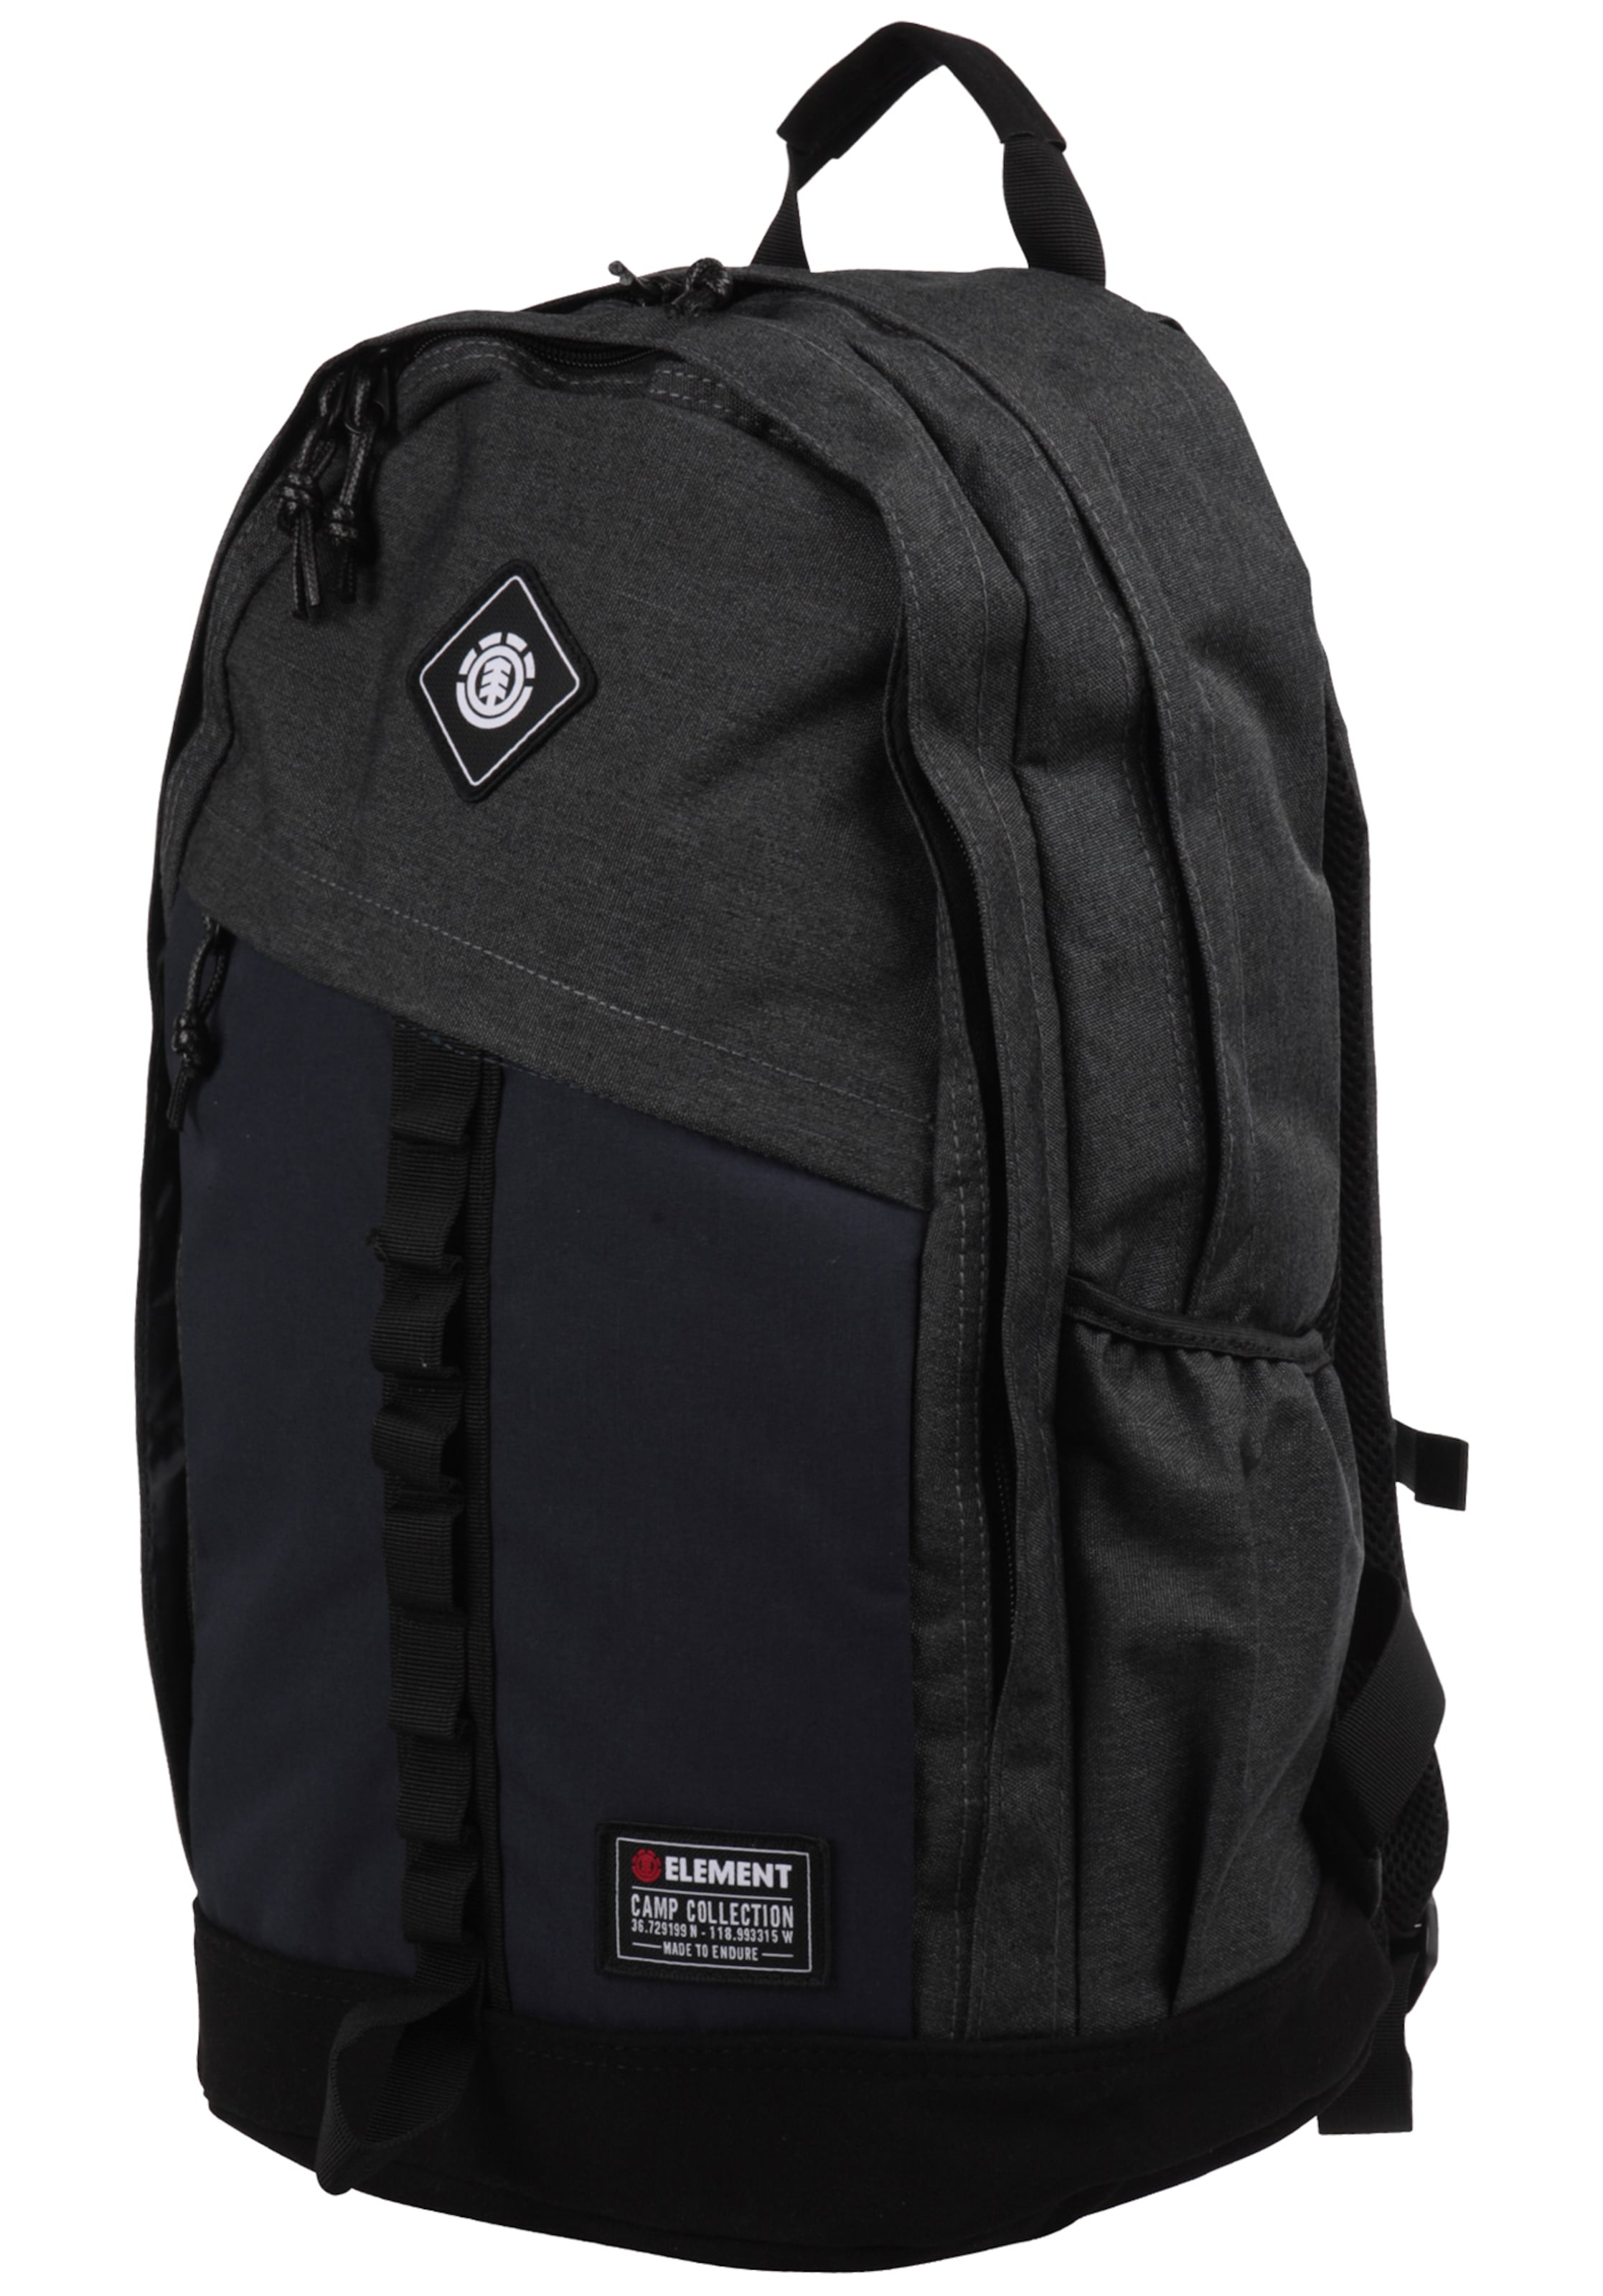 'cypress' Element Rucksack Element In In In Rucksack Rucksack Schwarz Element 'cypress' 'cypress' Schwarz IvfgY6ymb7